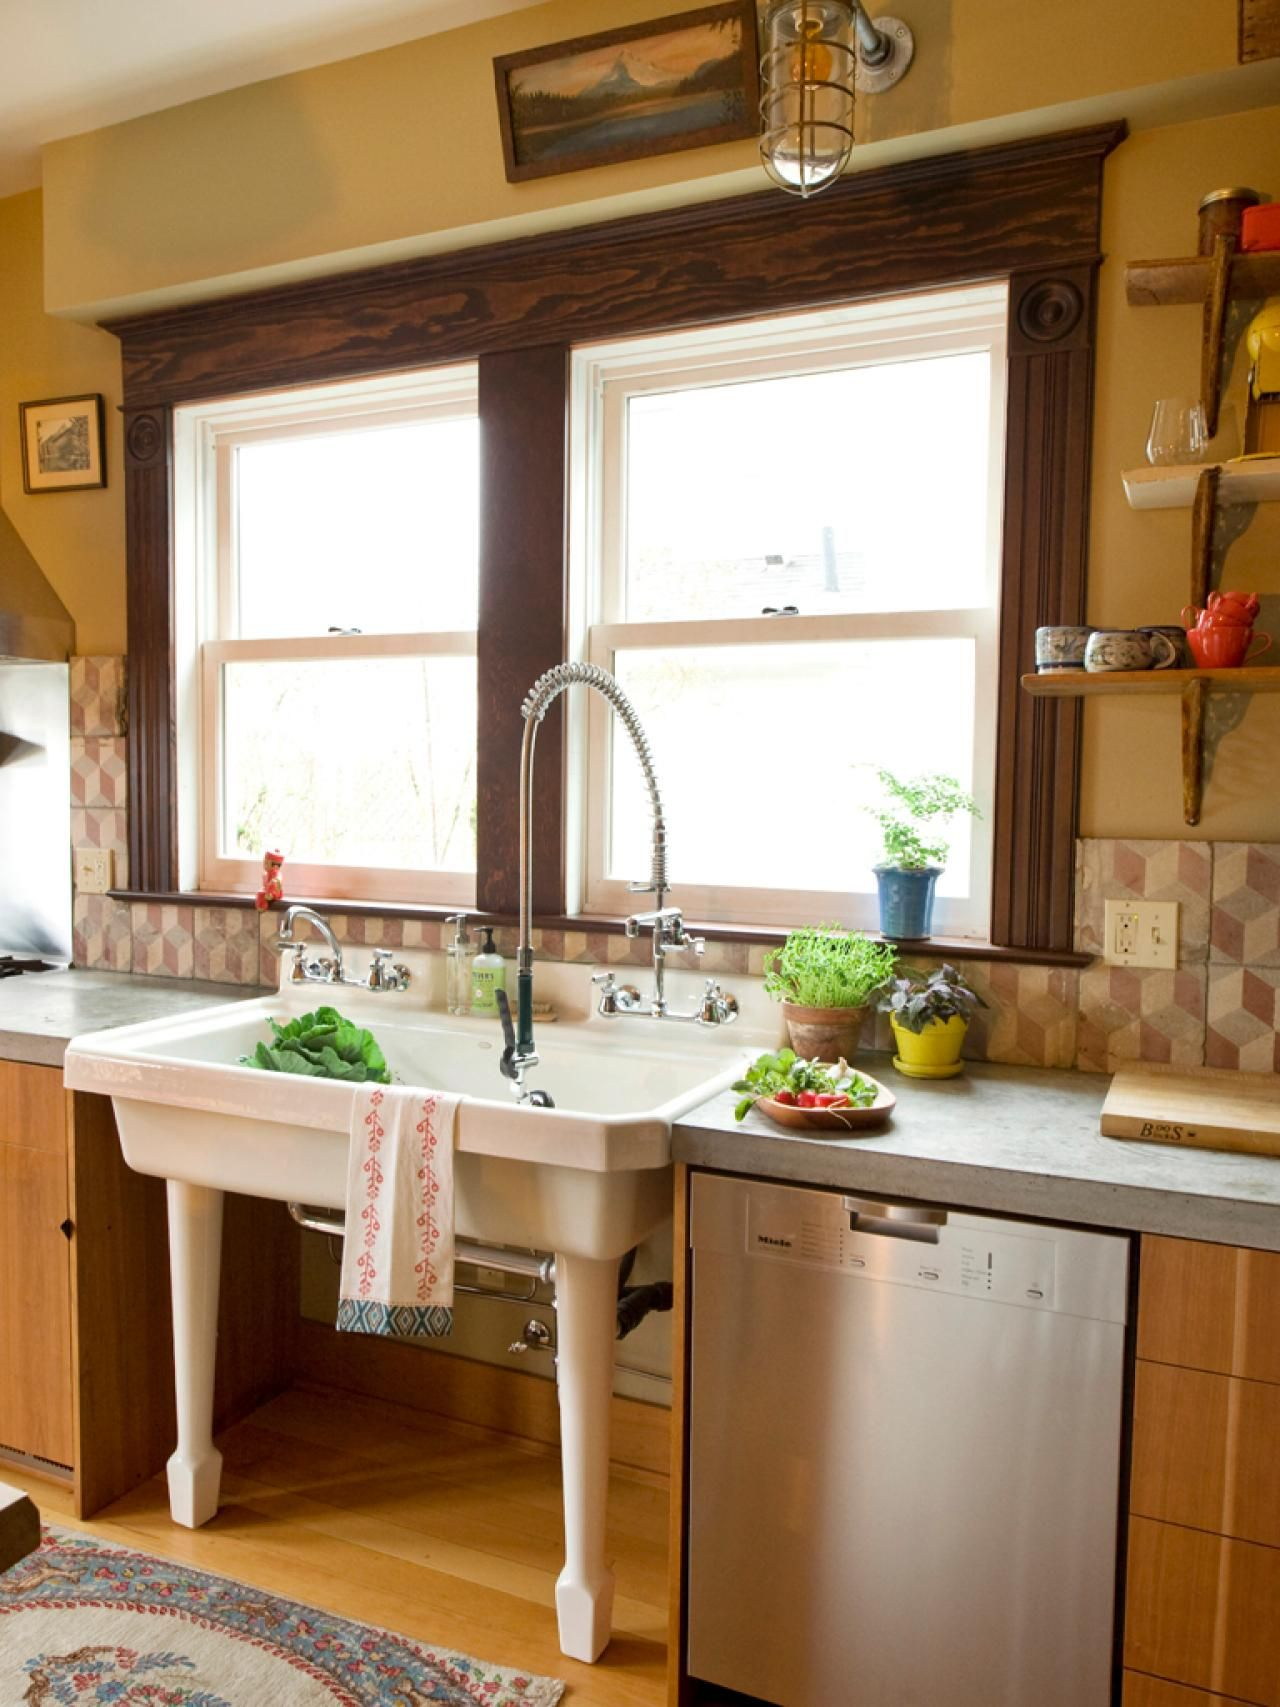 A Century-Old Kitchen Comes to Life | Kitchens, Sinks and Hgtv